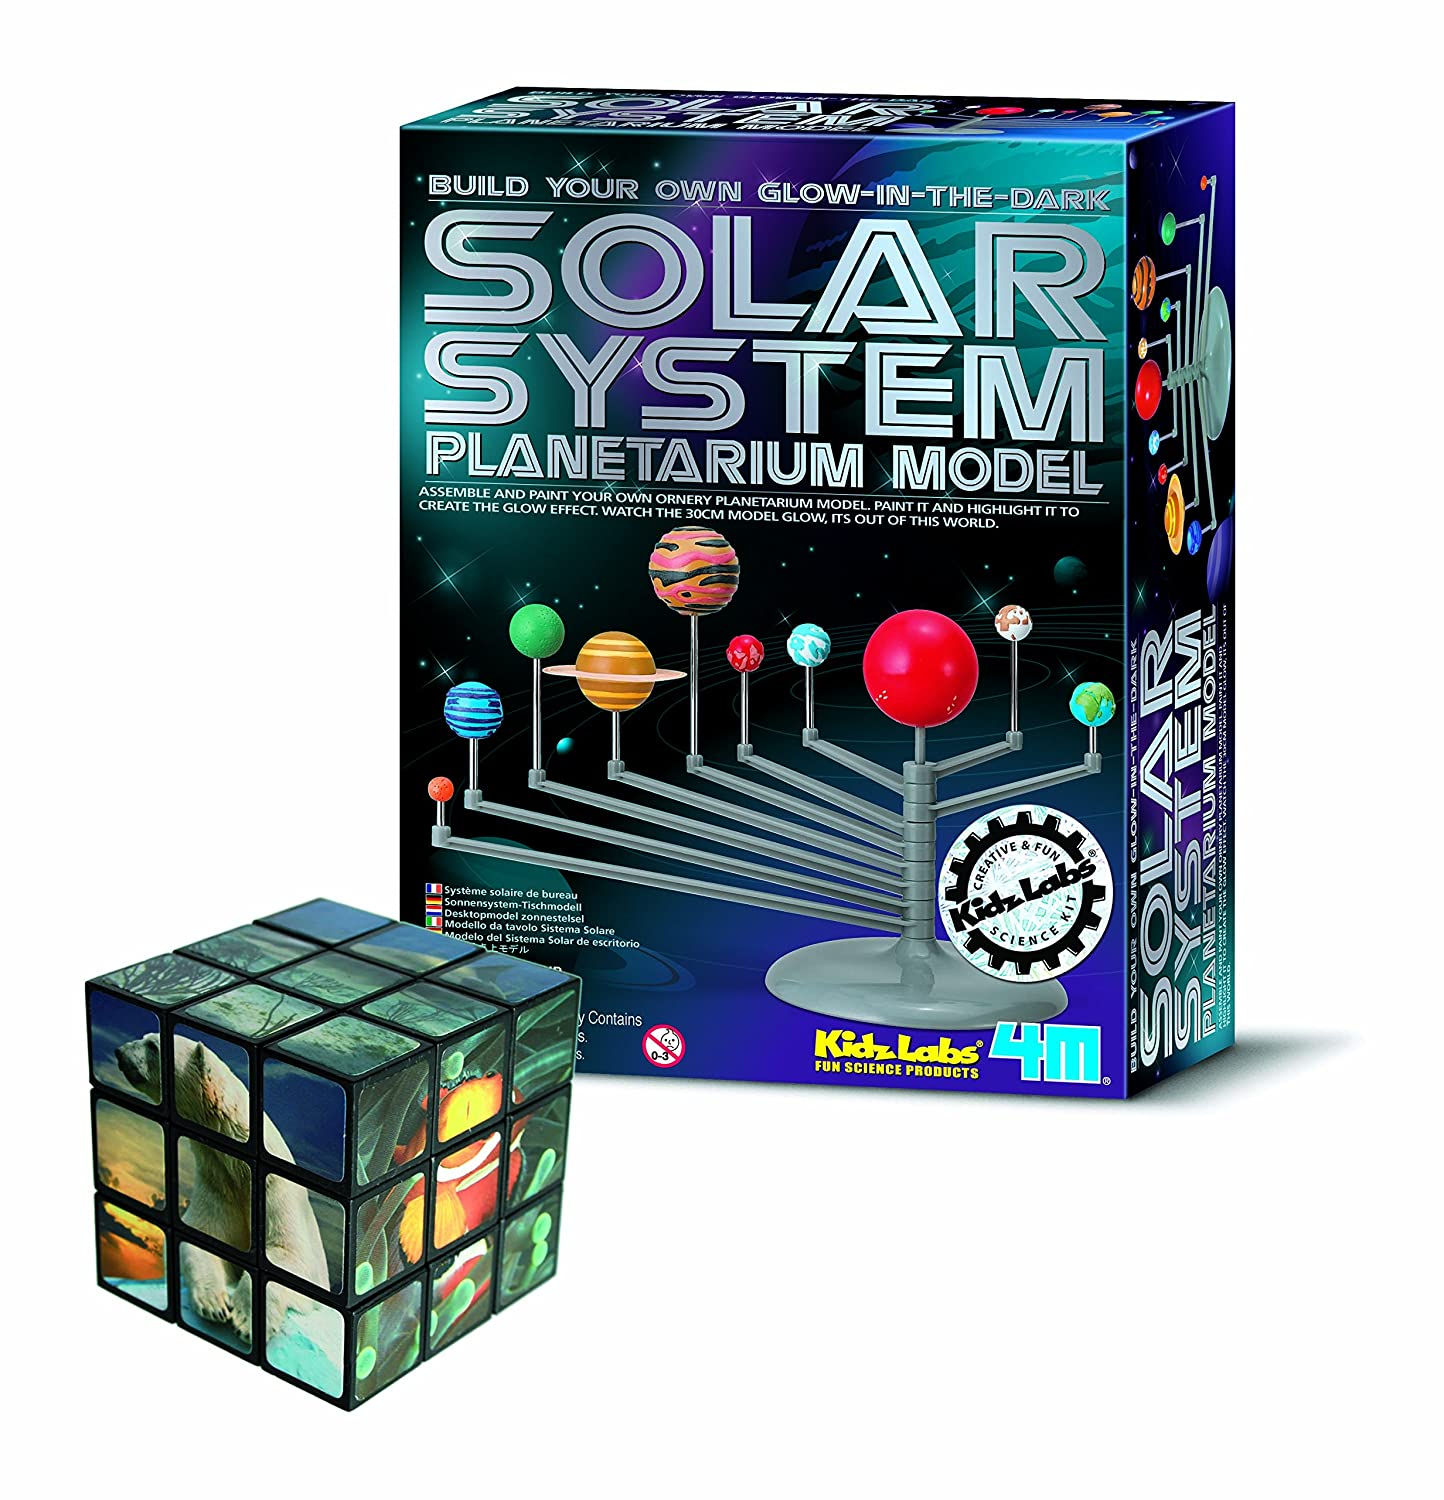 First Port of Call for Gifts Learn About Space & the Solar System the Fun Way Planetarium - Comes with a Fun Sealife Magic Cube Puzzle The Good Gift Shop